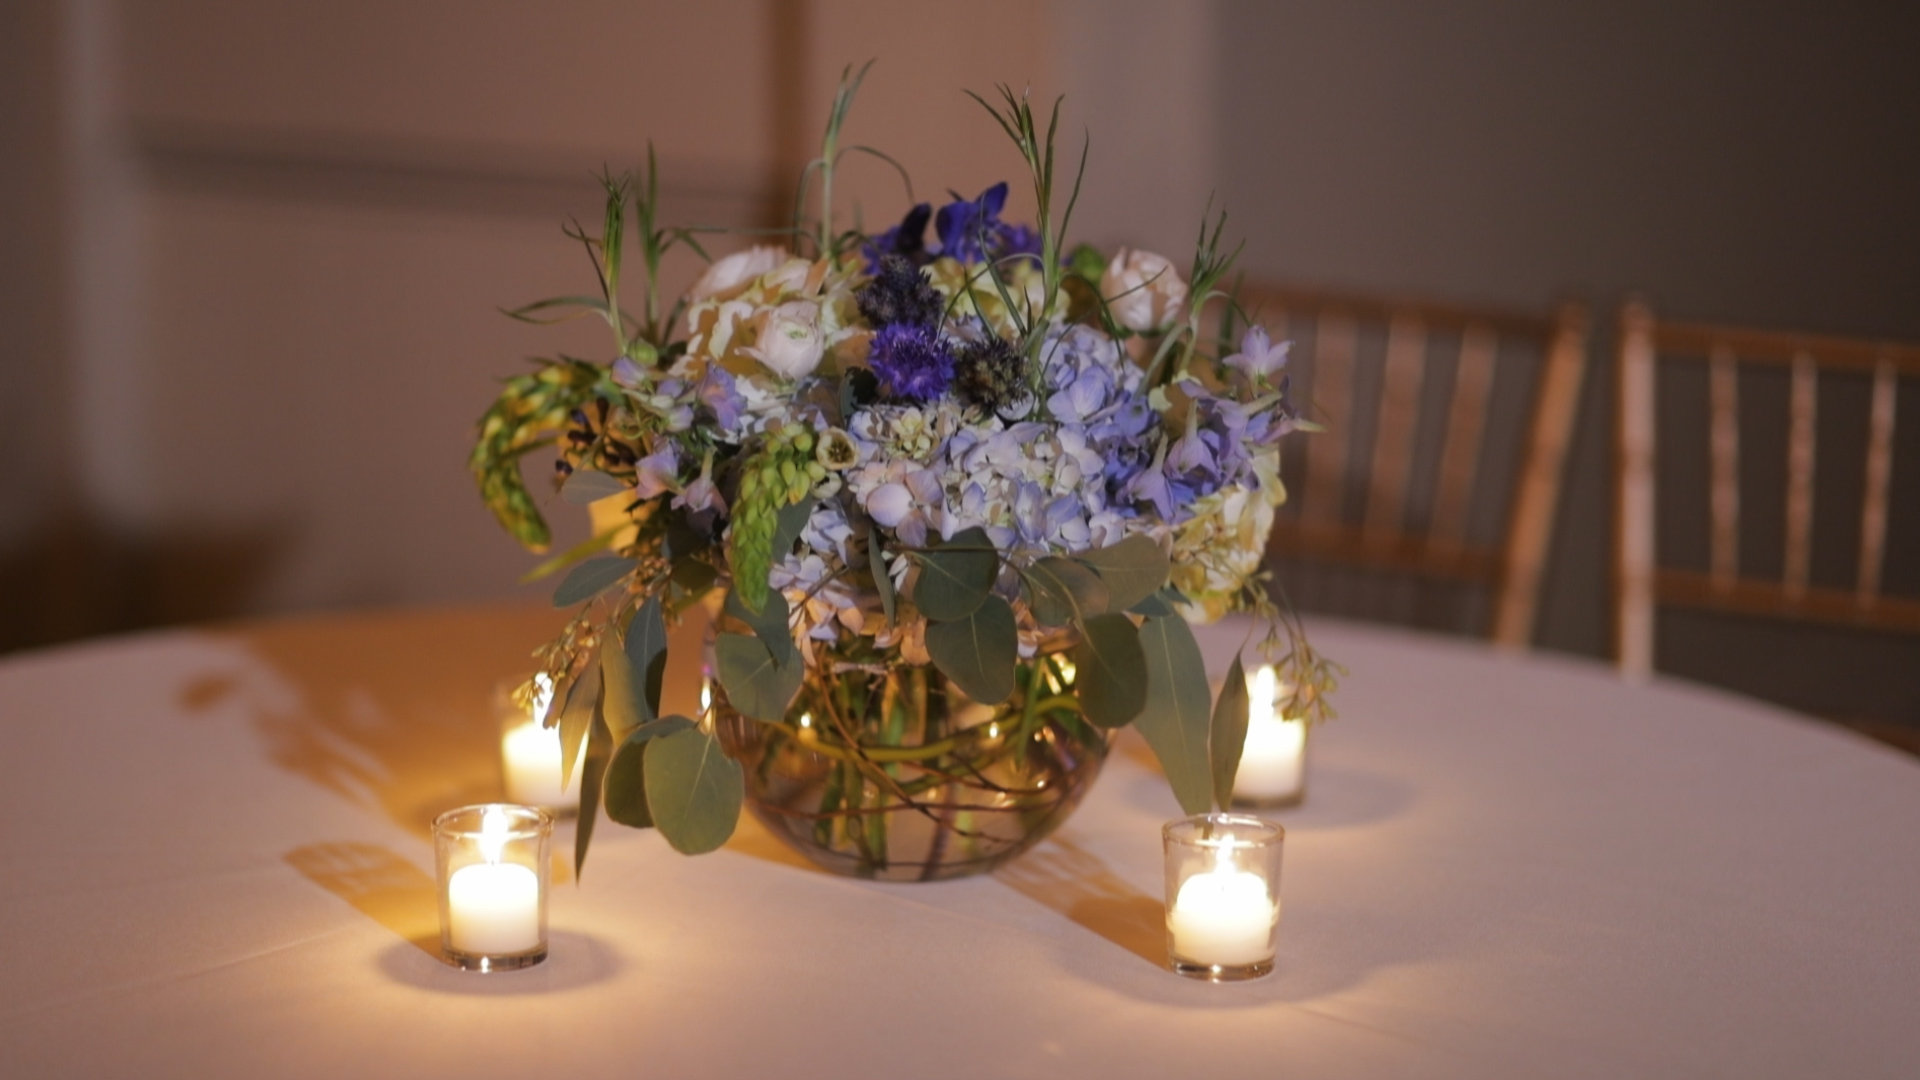 Anya and Max_New Orleans Wedding Video_Bride Film_Board of Trade reception_floral centerpiece